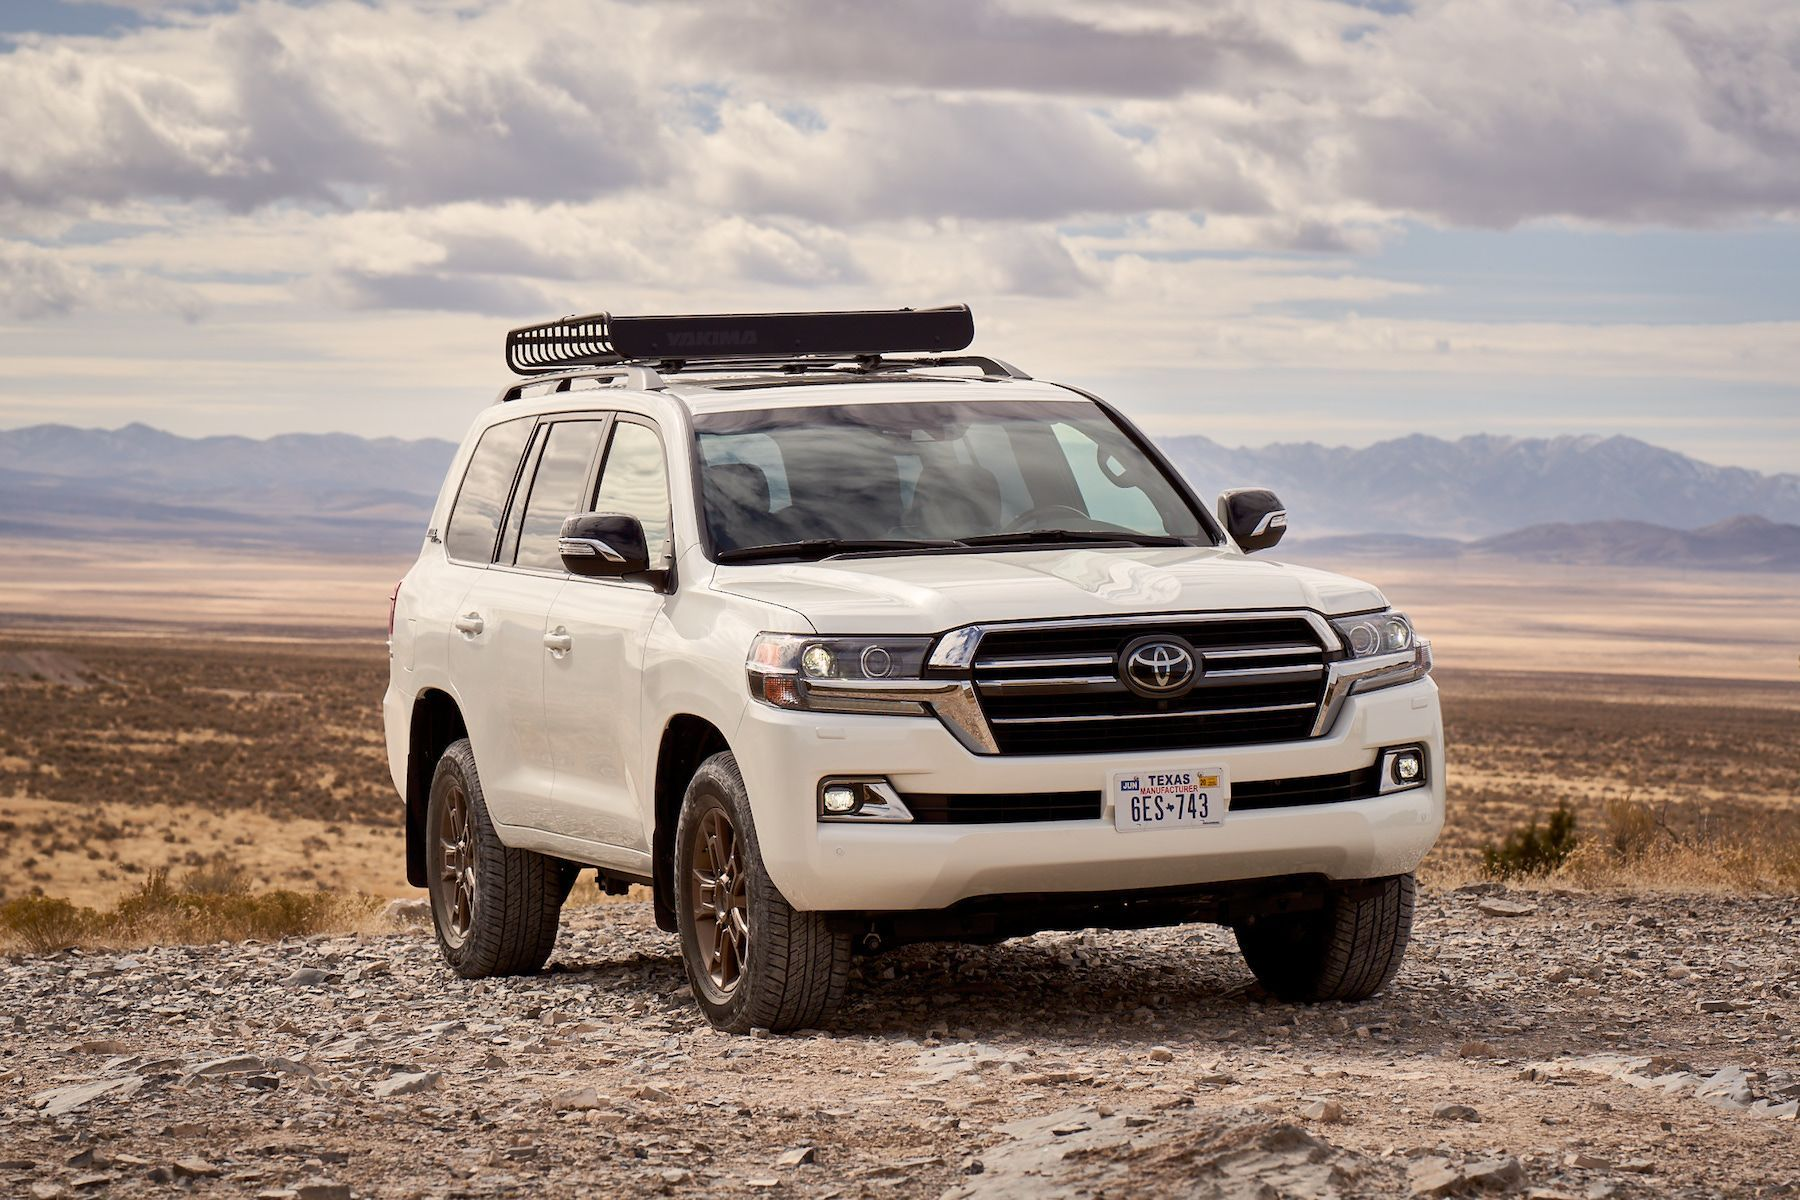 2020 Toyota Land Cruiser Spy Shoot